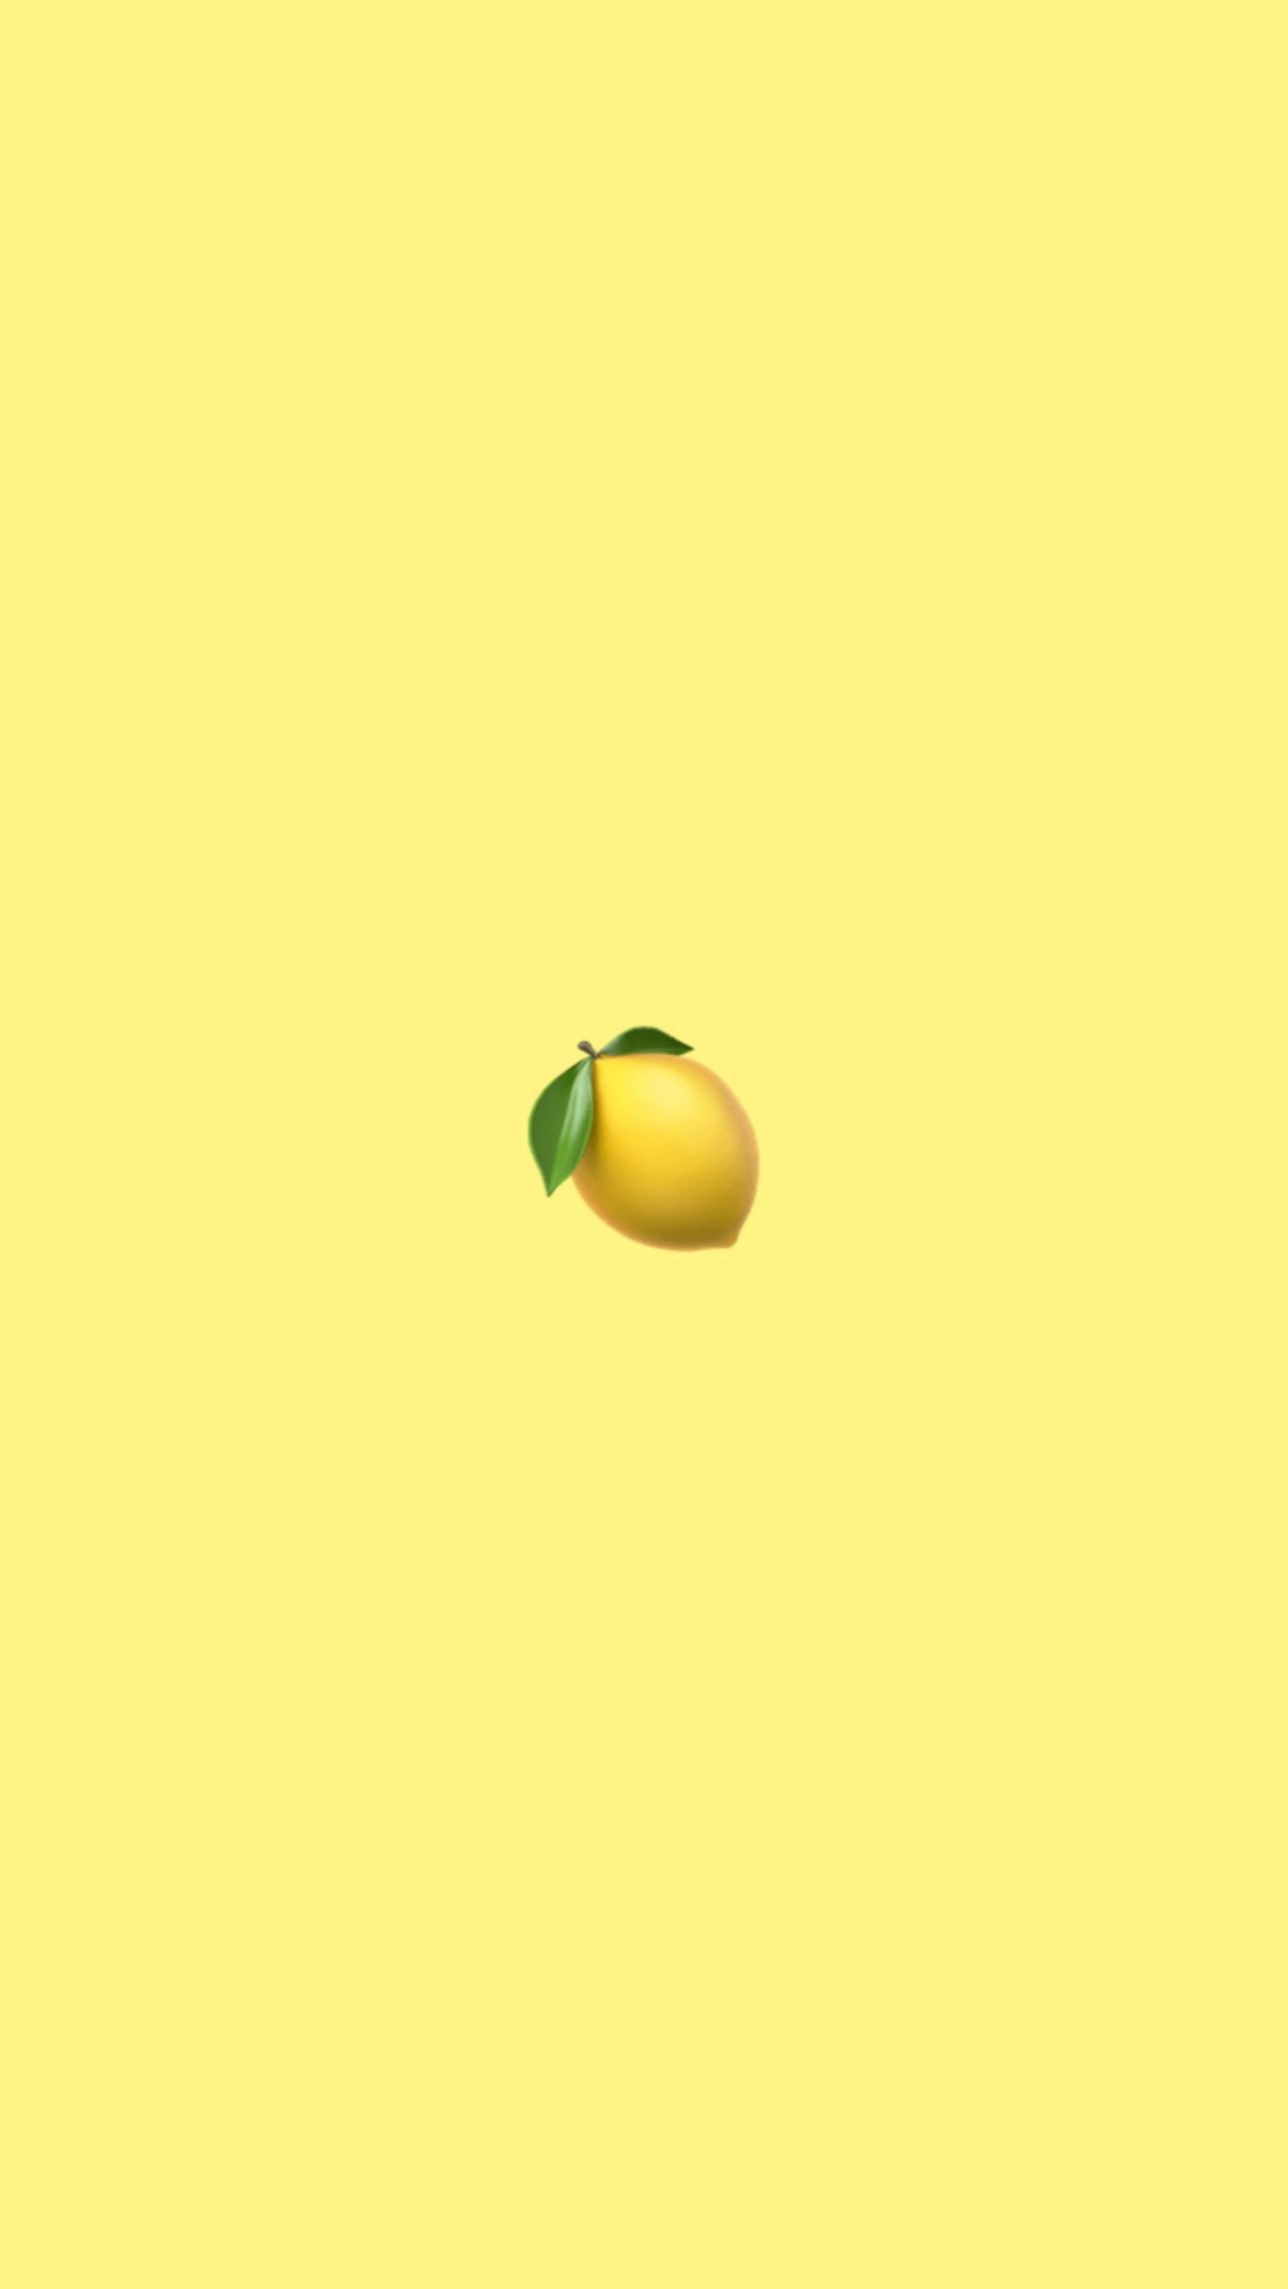 Aesthetic Lemon Wallpapers Top Free Aesthetic Lemon Backgrounds